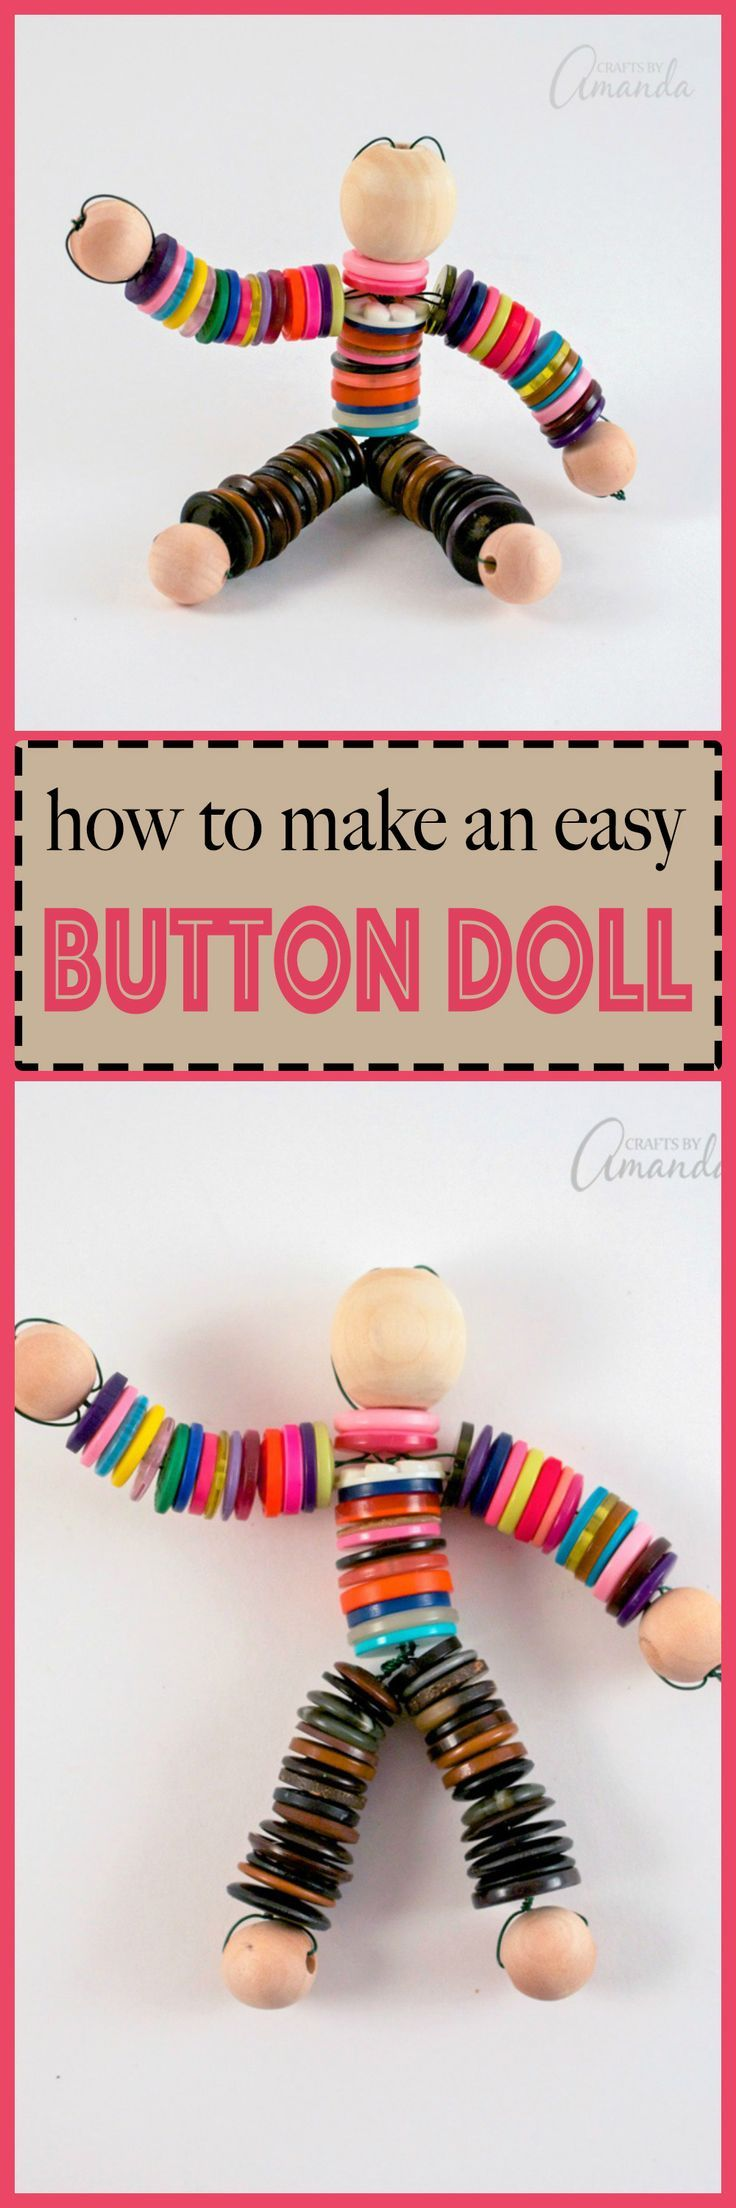 This button doll craft is perfect for anyone - adults, kids, even seniors and preschoolers. Making a button doll is easy and fun!